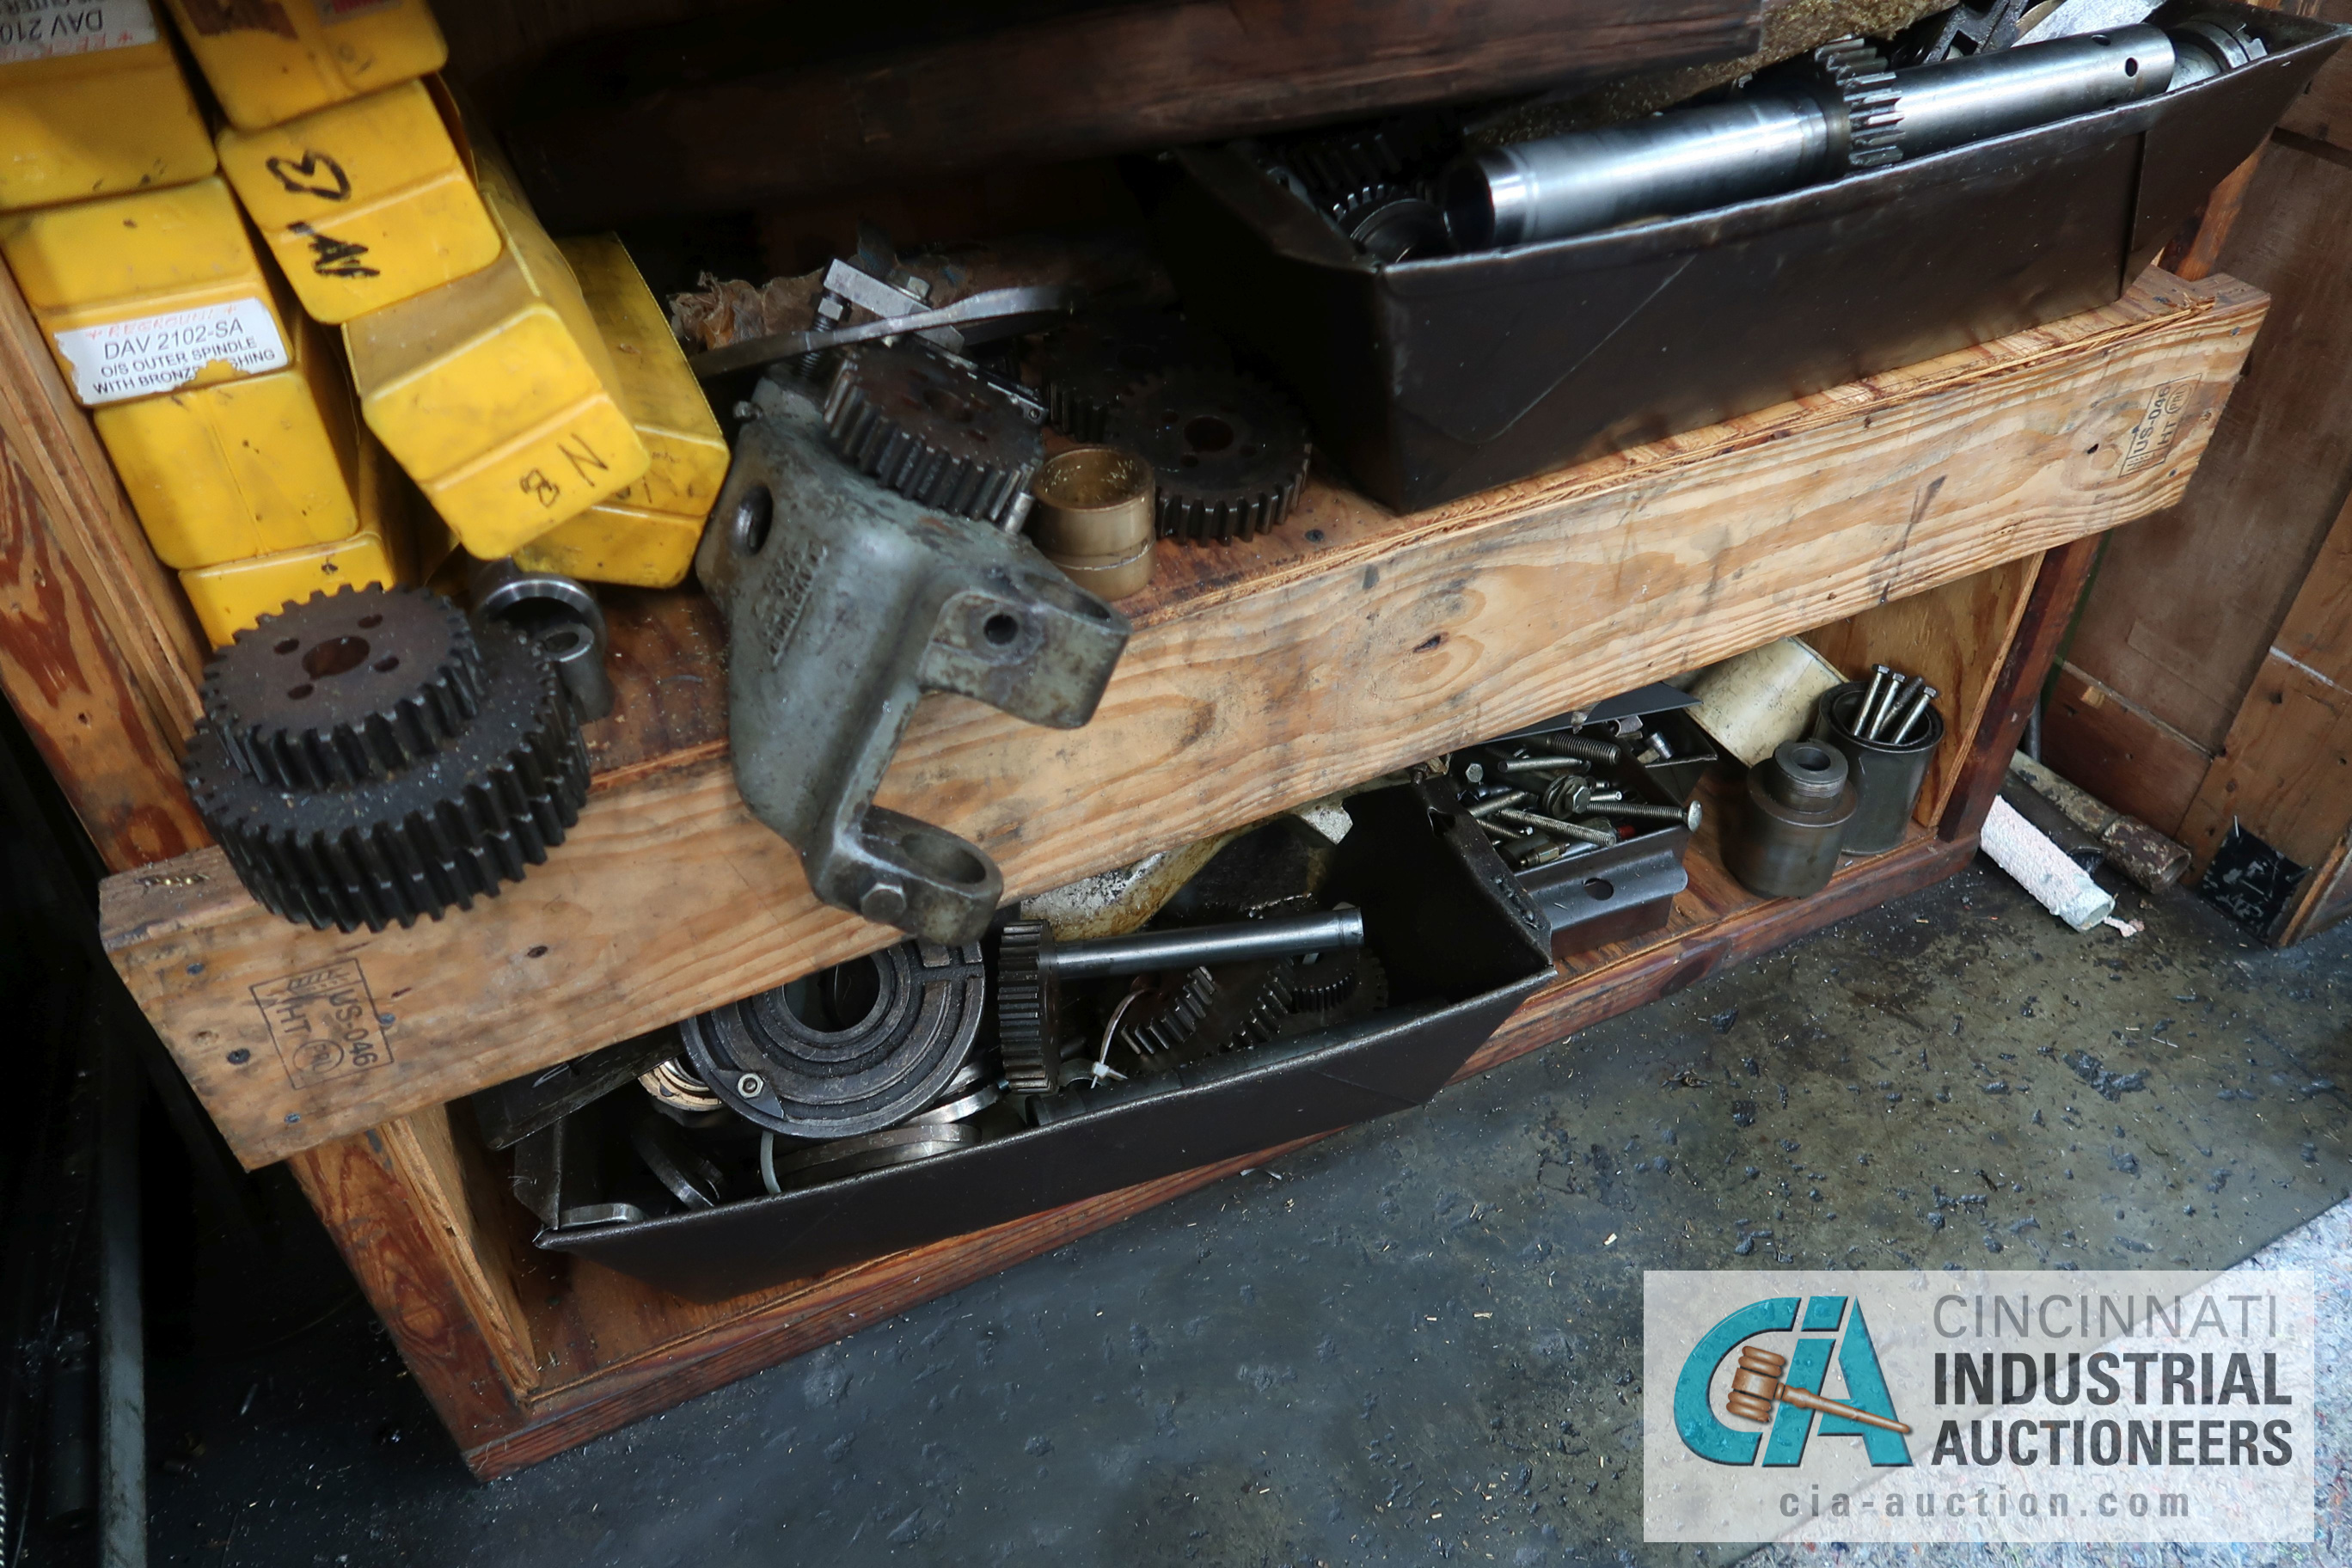 (LOT) LARGE ASSORTMENT MISCELLANEOUS DAVENPORT TOOLING, ATTACHMENTS, GEARS, CAMS AND OTHER RELATED - Image 7 of 21